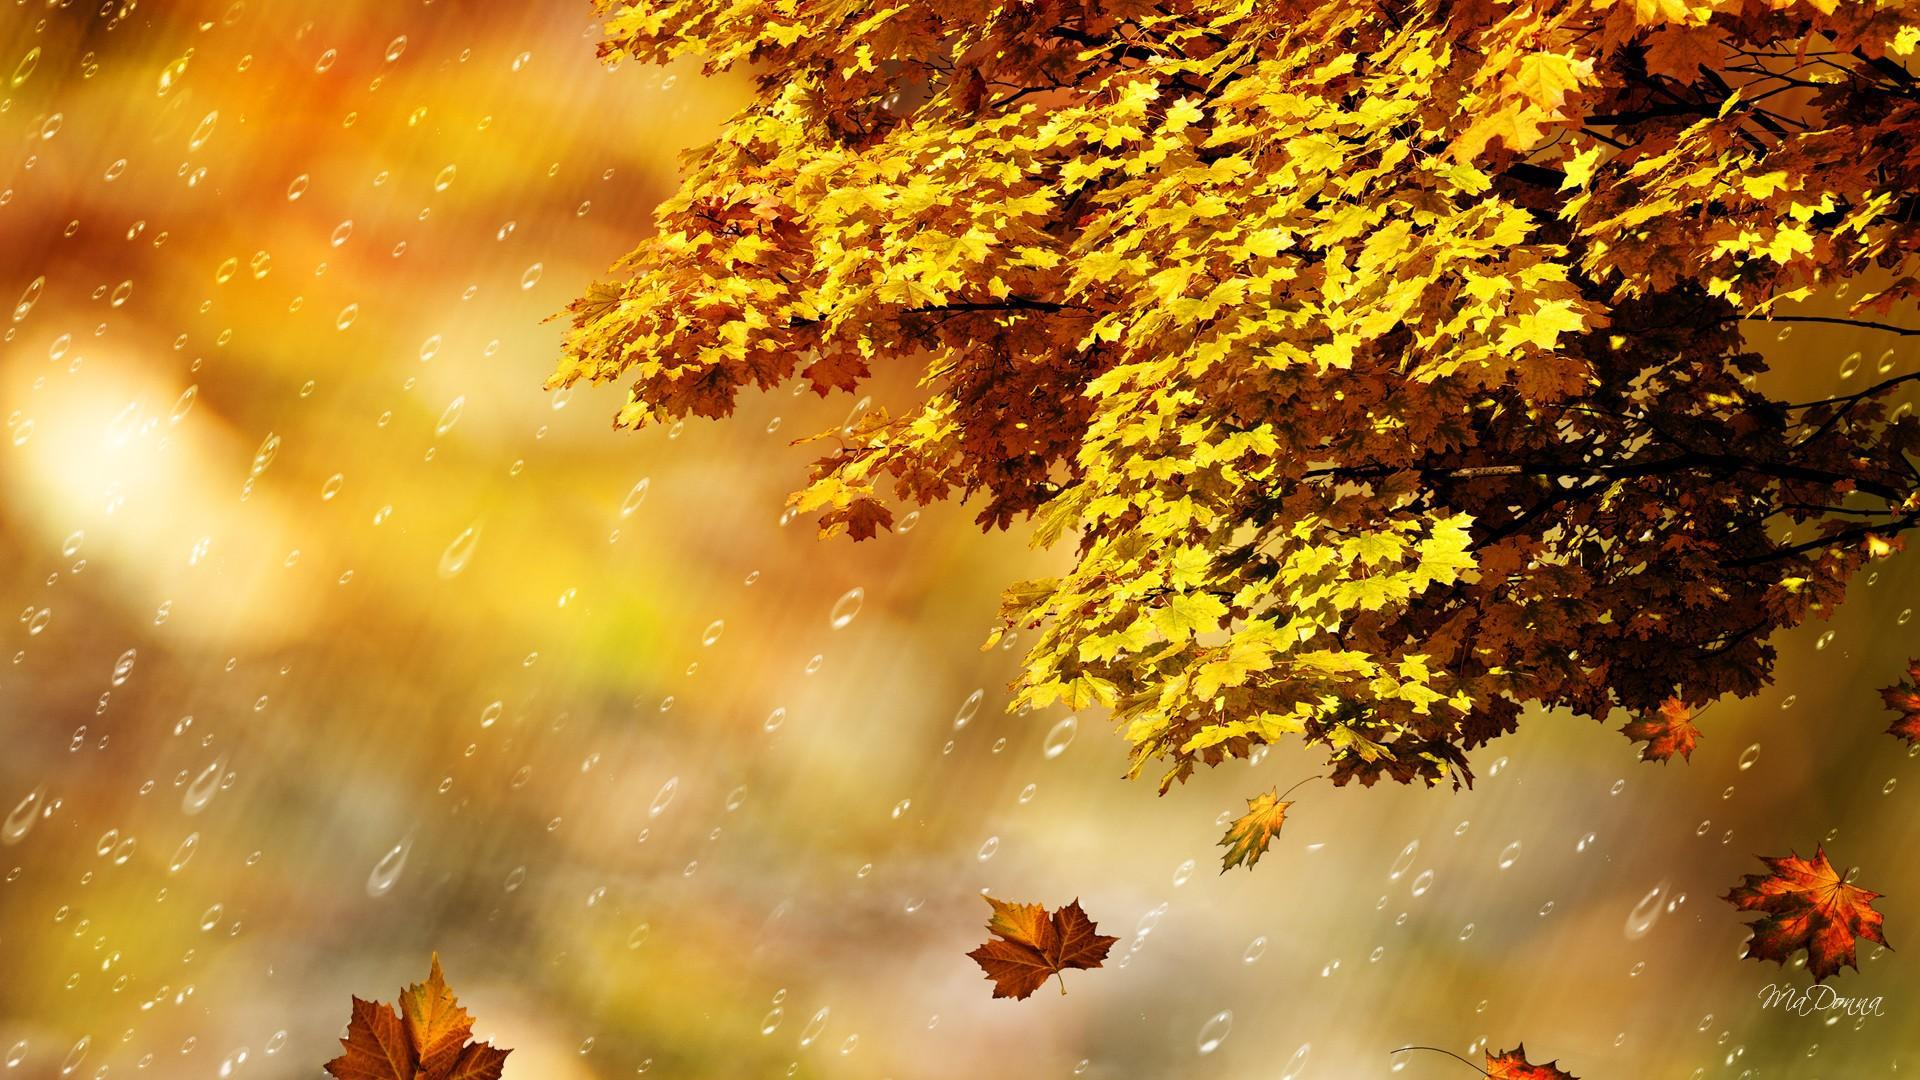 Rainy Season Wallpapers With Quotes Hd Fall Rain Shower Hd Desktop Wallpaper Widescreen High